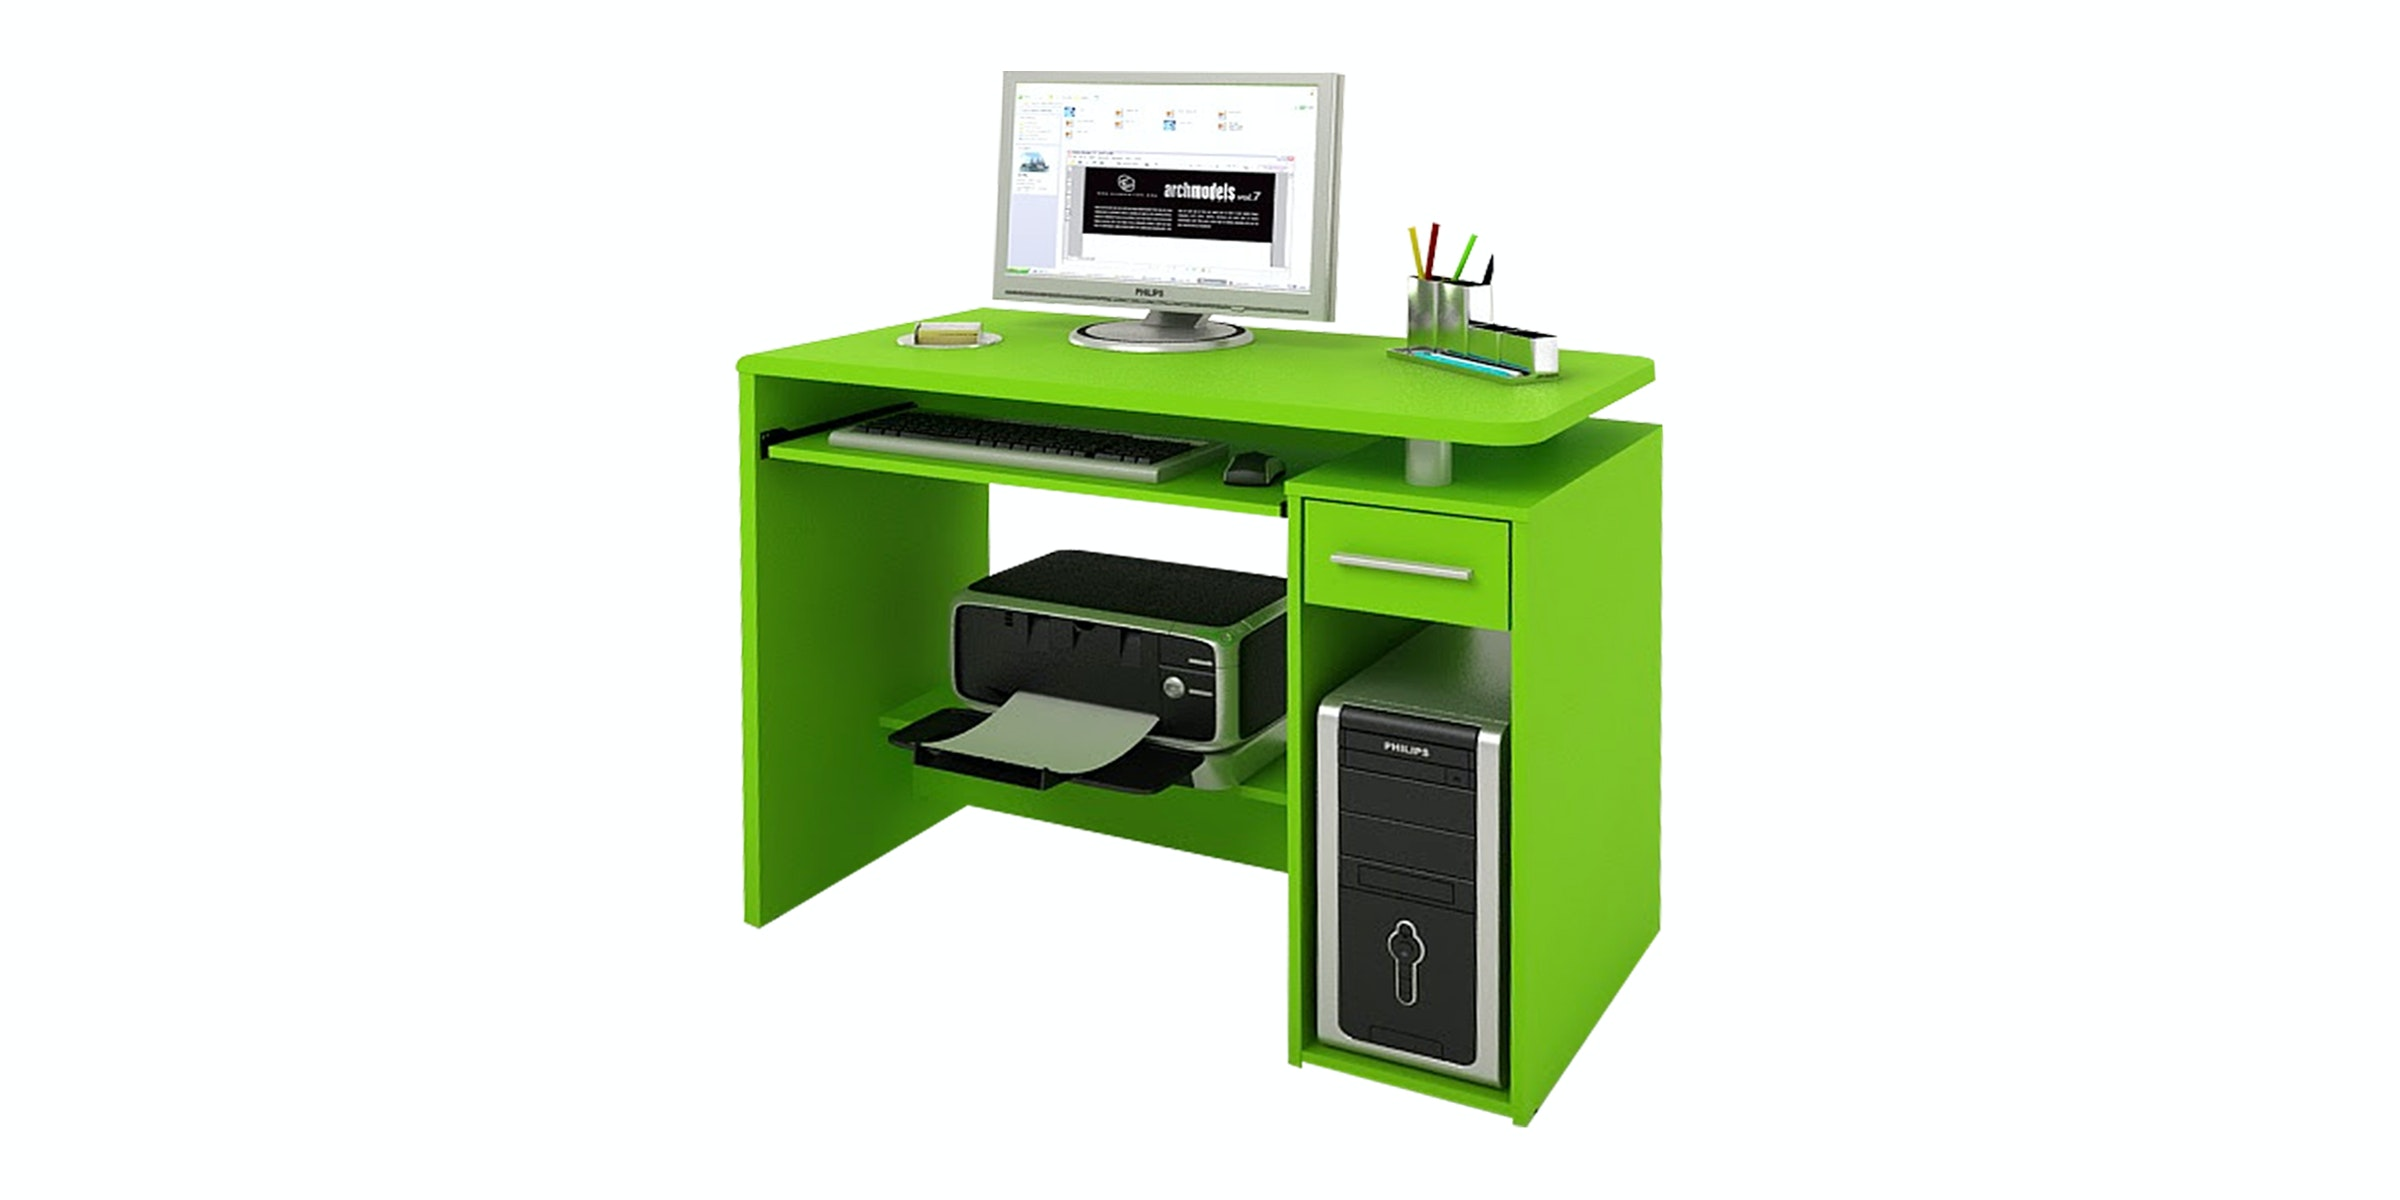 Pro Design Jude Meja Kerja - Apple Green